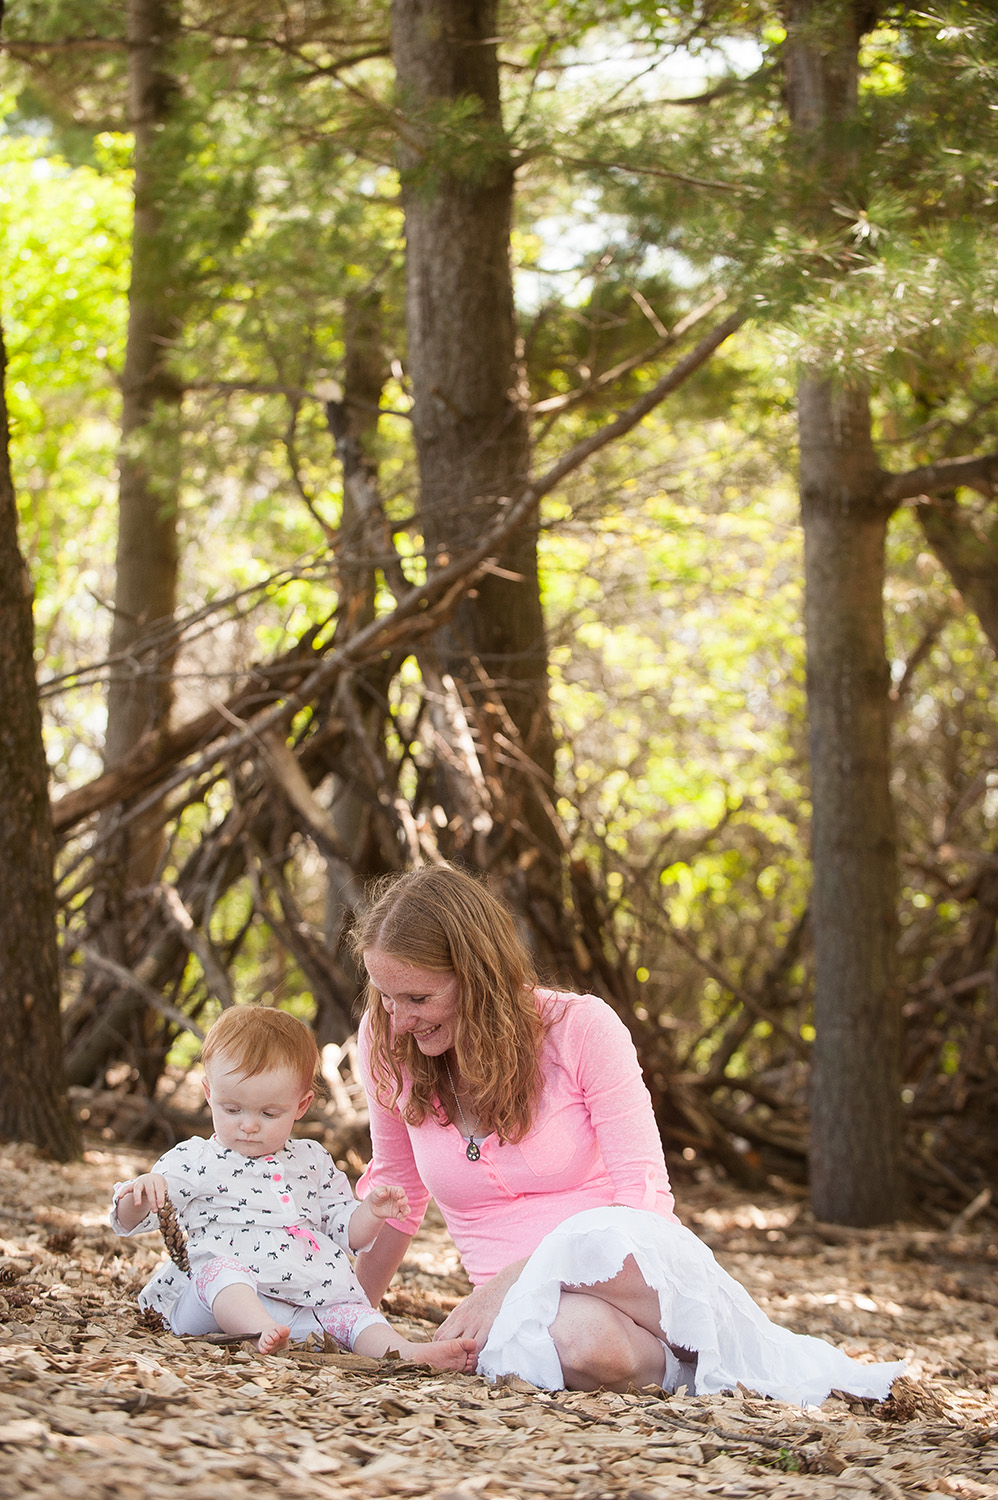 Elko New Market Family Photographer Anthologie specializes in capturing candid moments with you and your family. Mother and daughter photographed at White Tail Woods Park in Rosemount, MN.